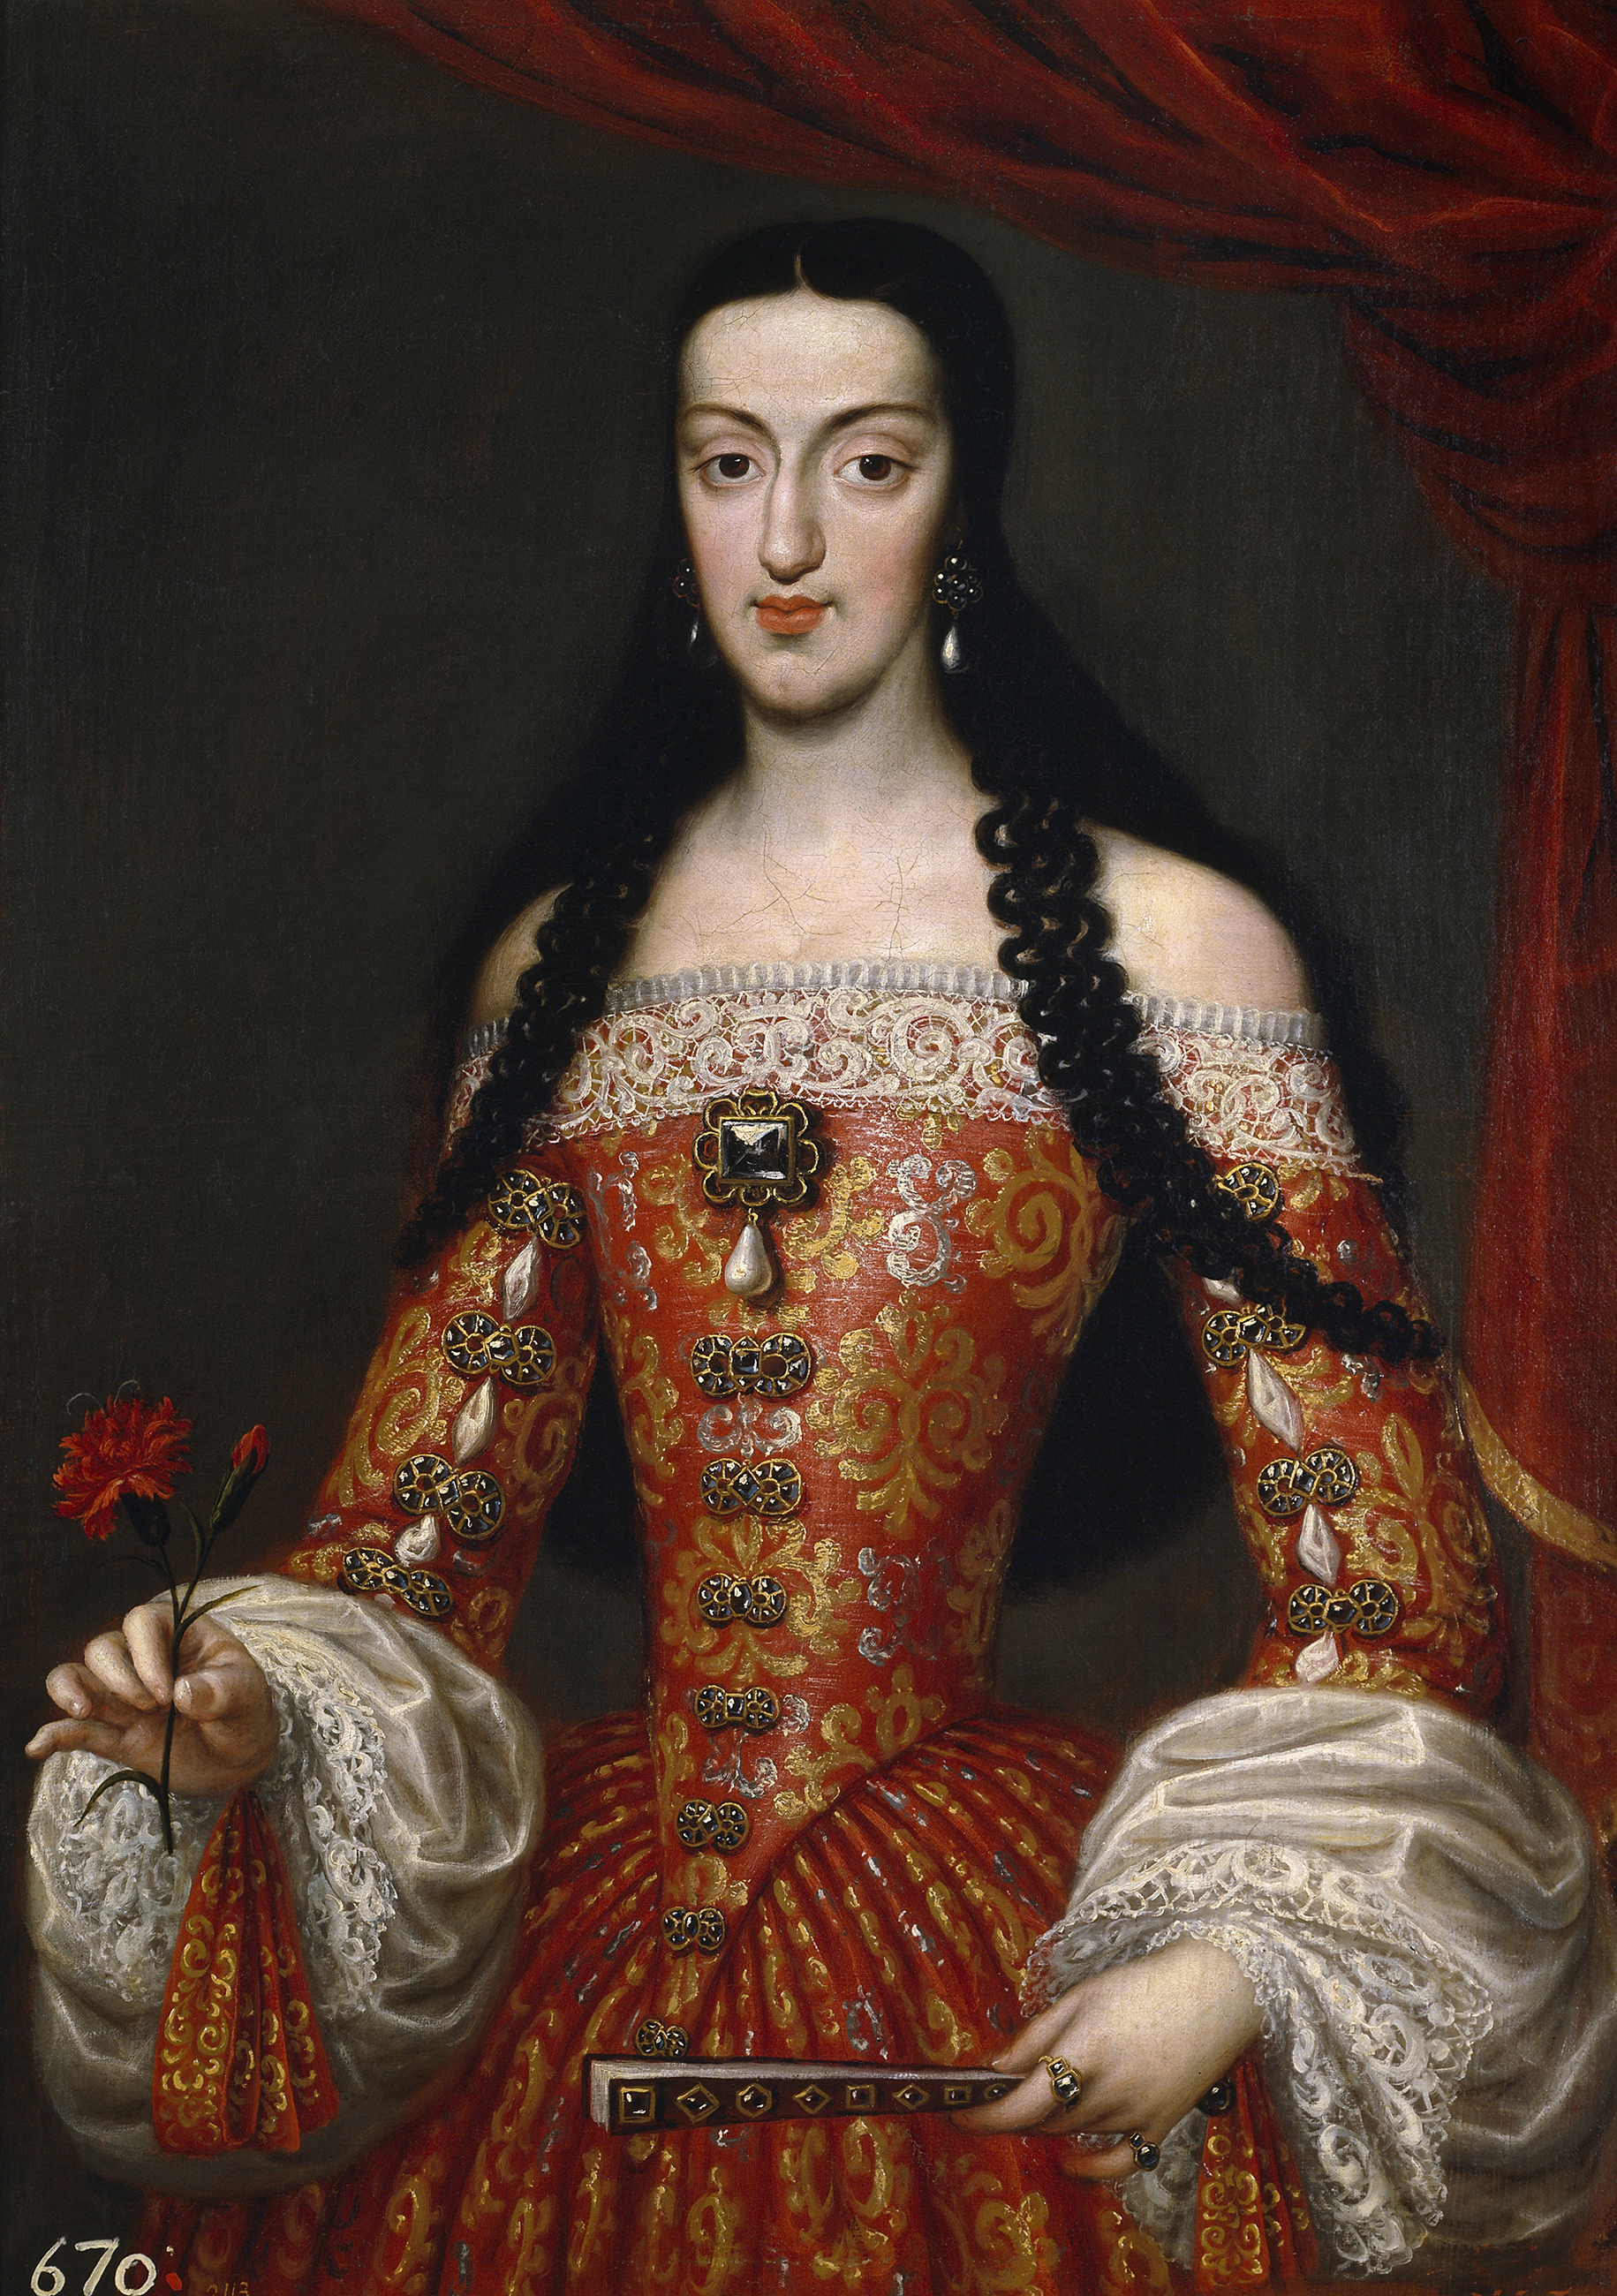 Portrait of Marie Louise of Orléans (1662-1689), Queen consort of Spain (1679-1689), 1679 | Portraits of Kings